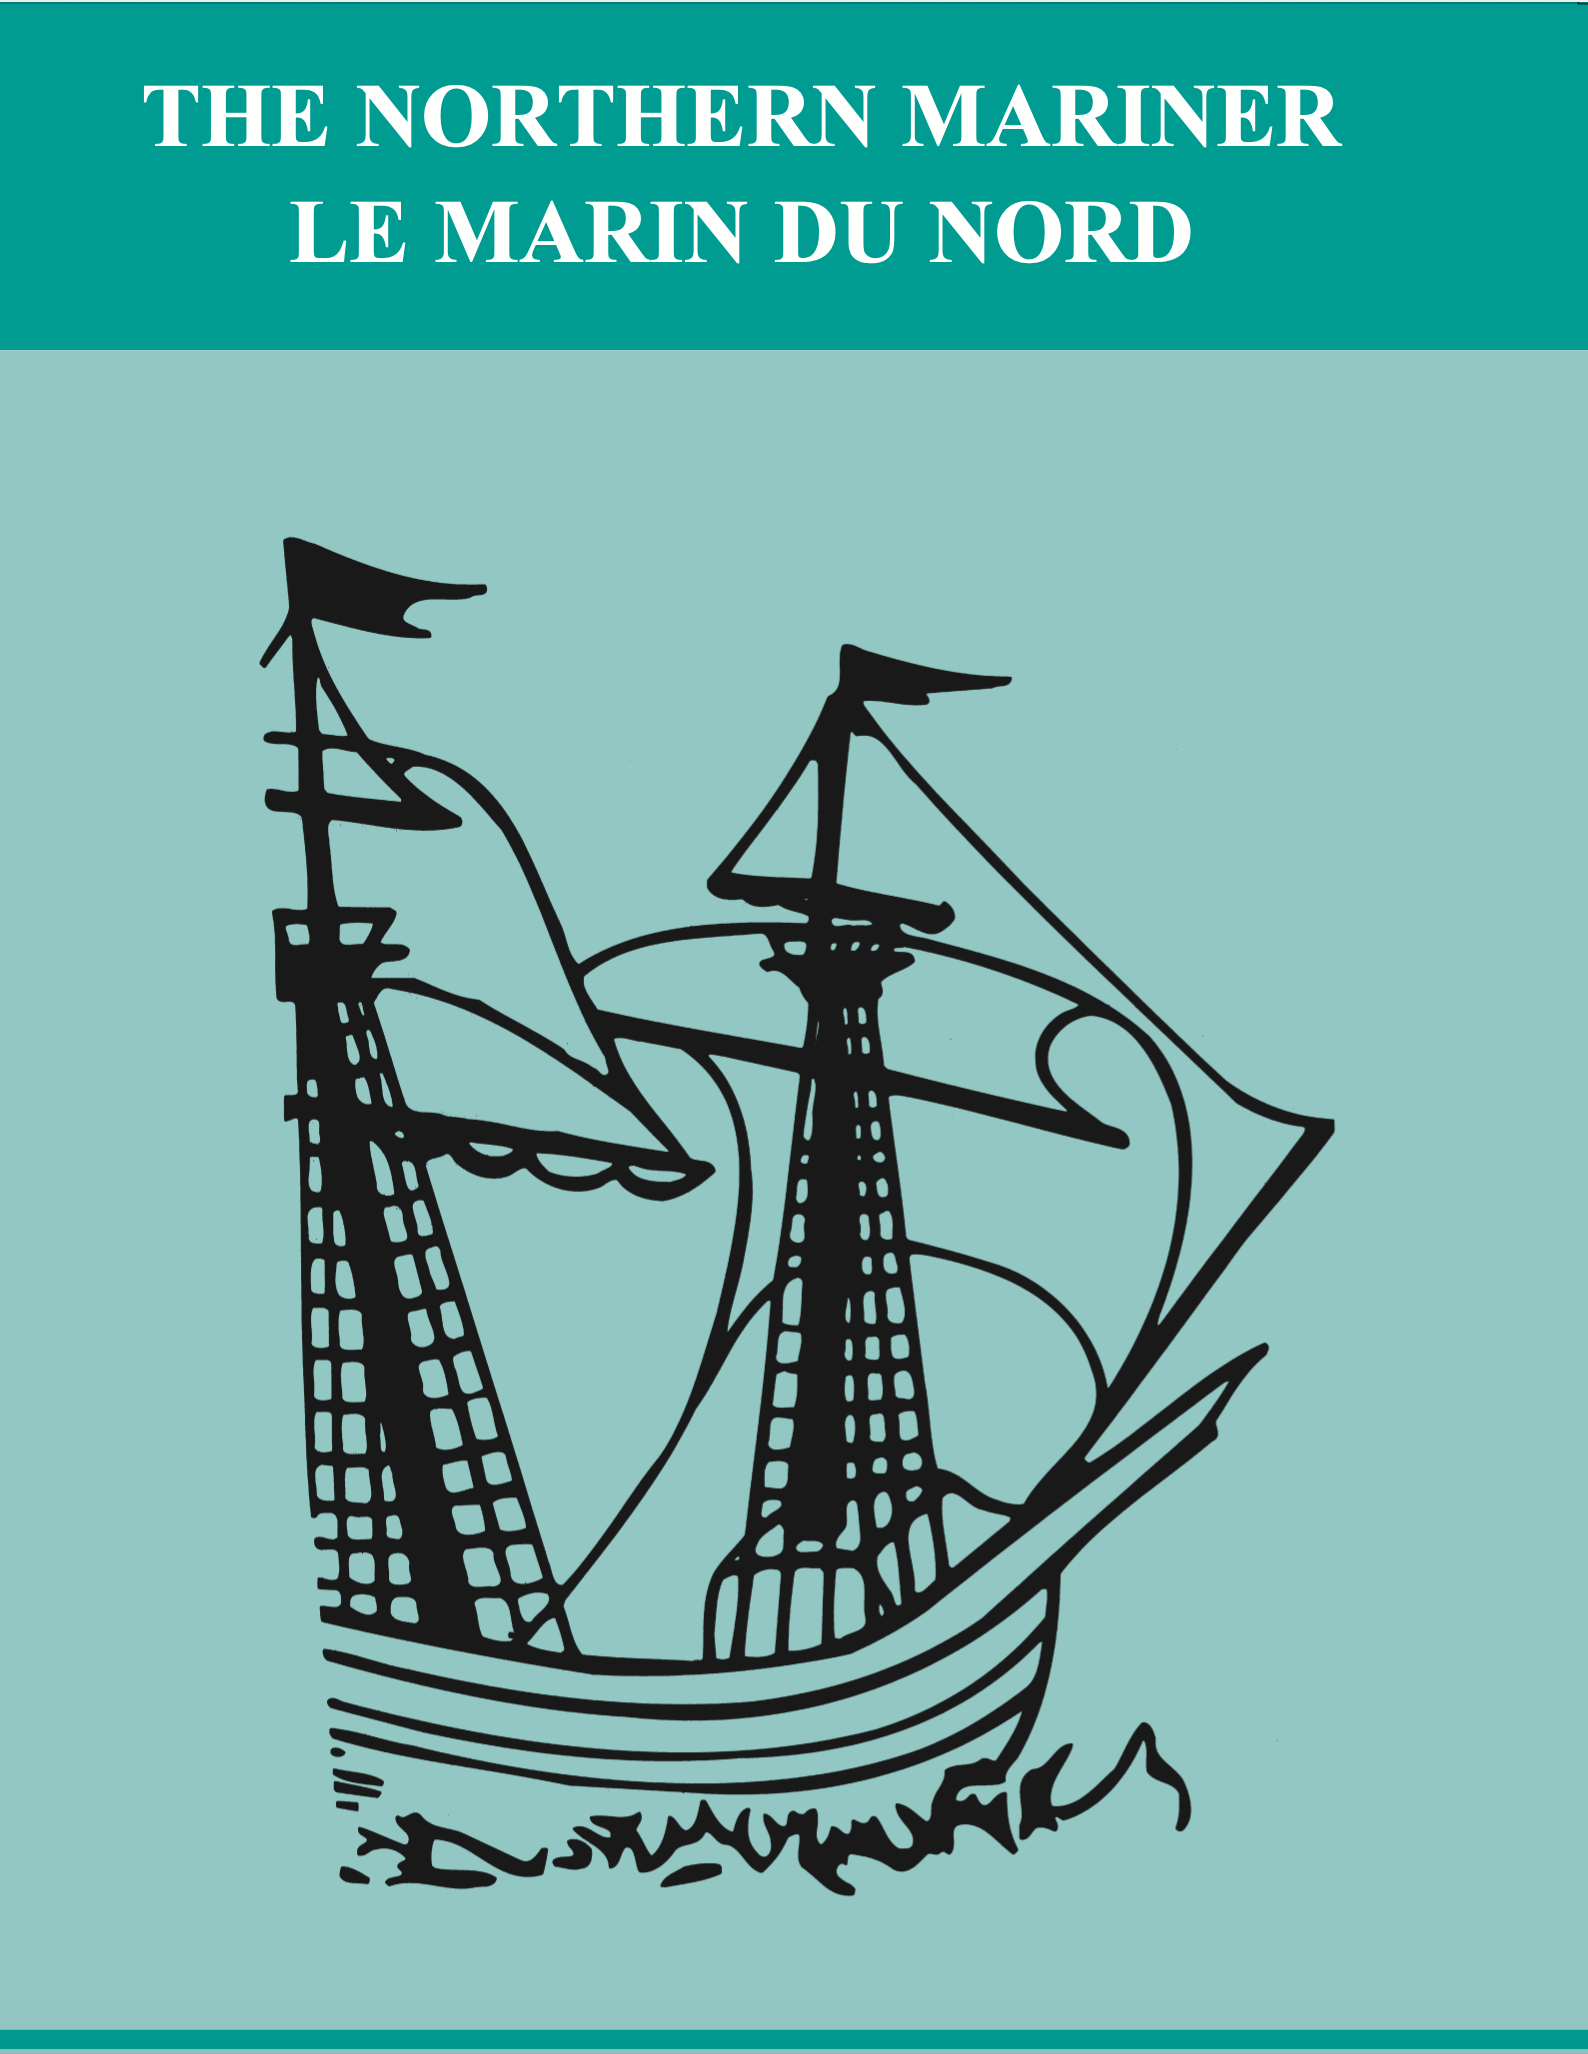 The image depicts the current cover of The Northern Mariner. It includes the journal's title and an illustration of the San Juan, the Basque whaling ship from 1565 that Parks Canada excavated in Red Bay, Labrador.